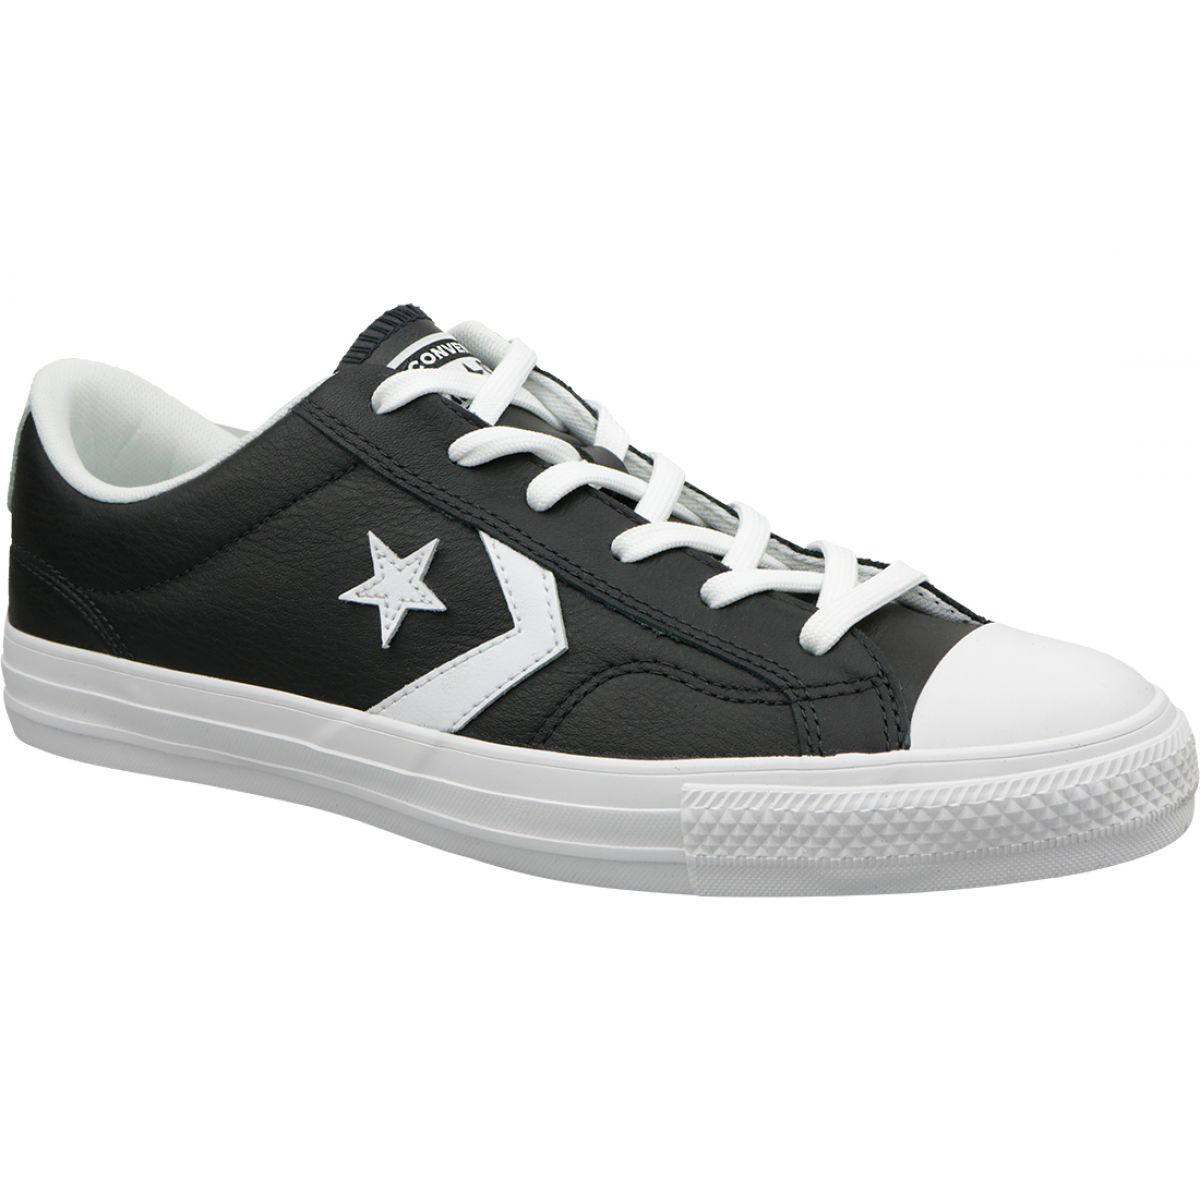 Converse Star Player Ox 159780C shoes black